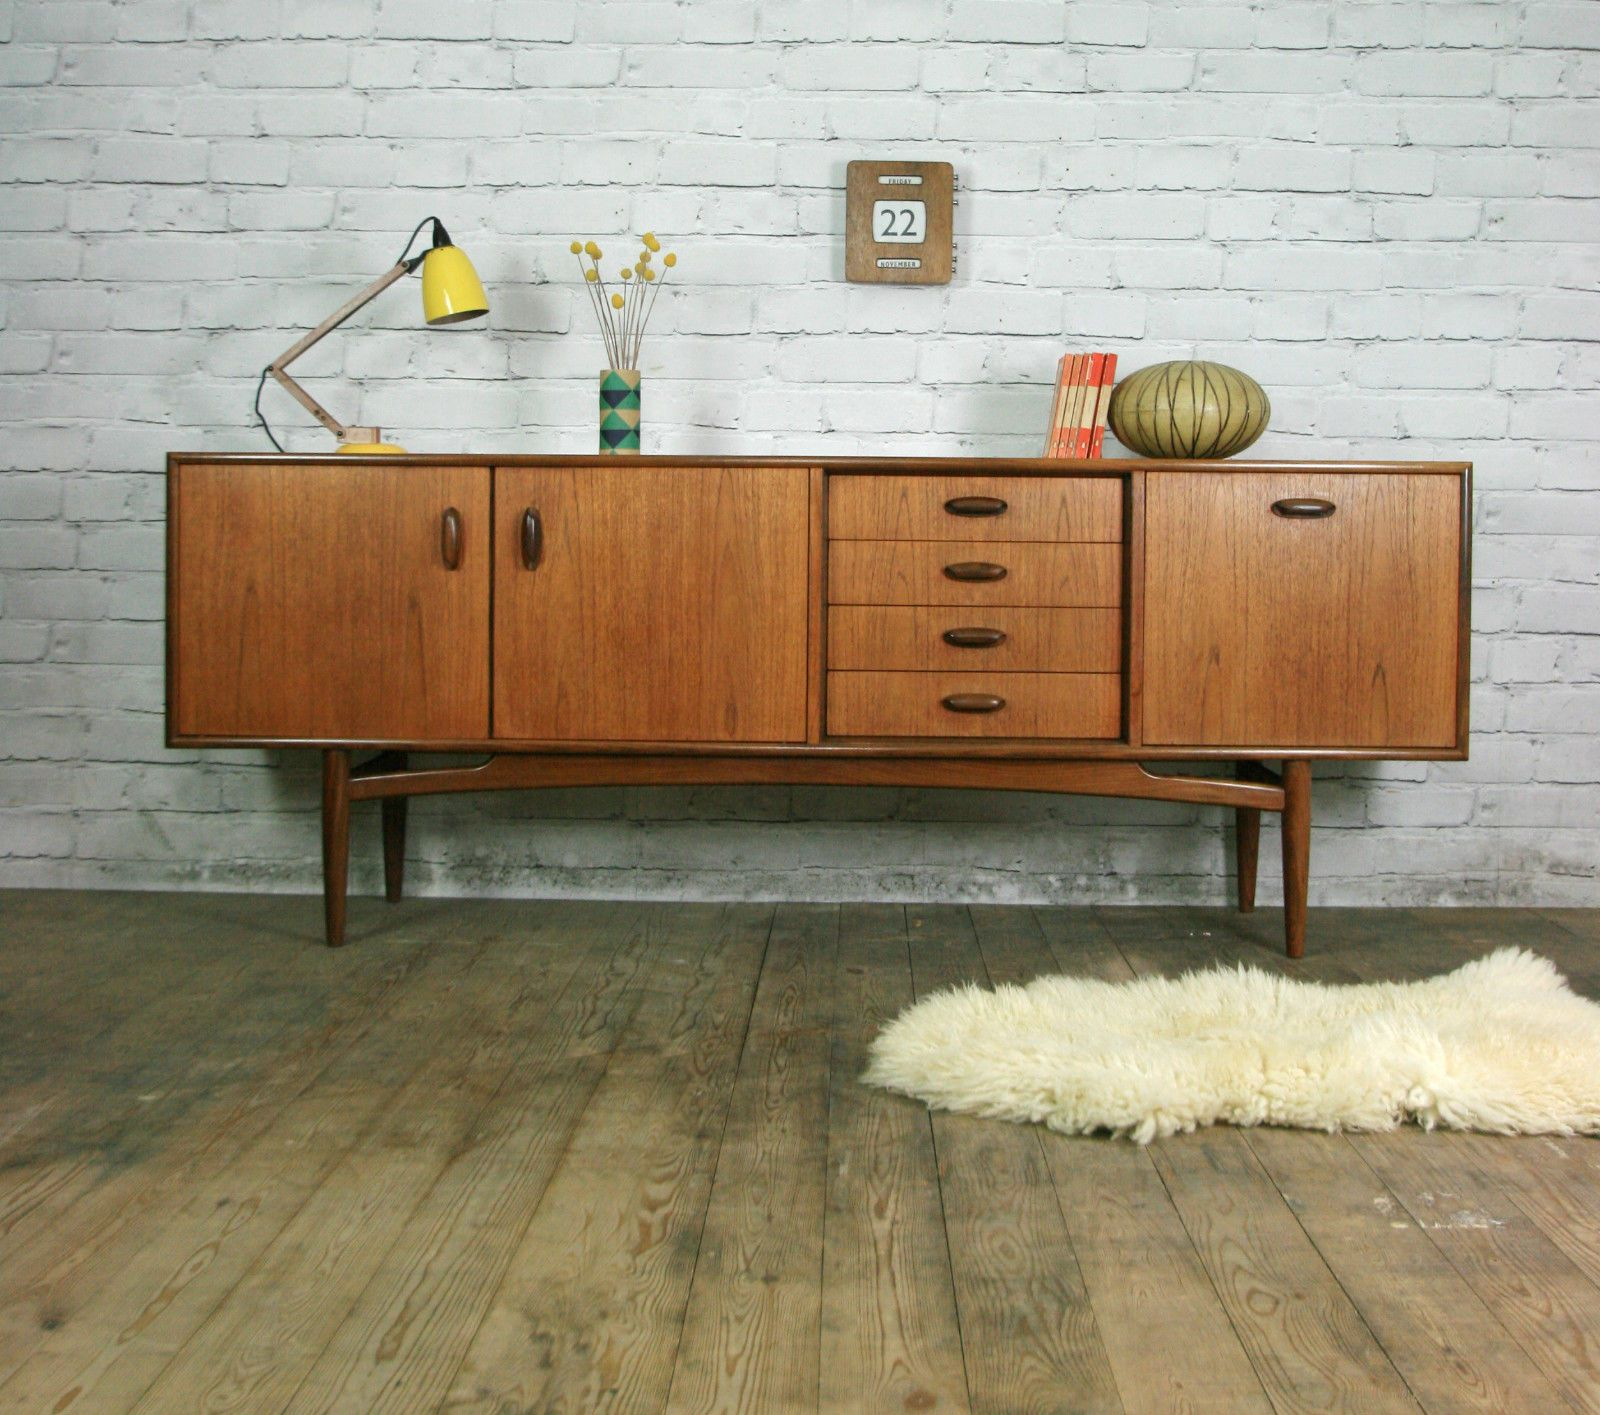 G plan retro vintage teak mid century sideboard eames era for Retro furniture